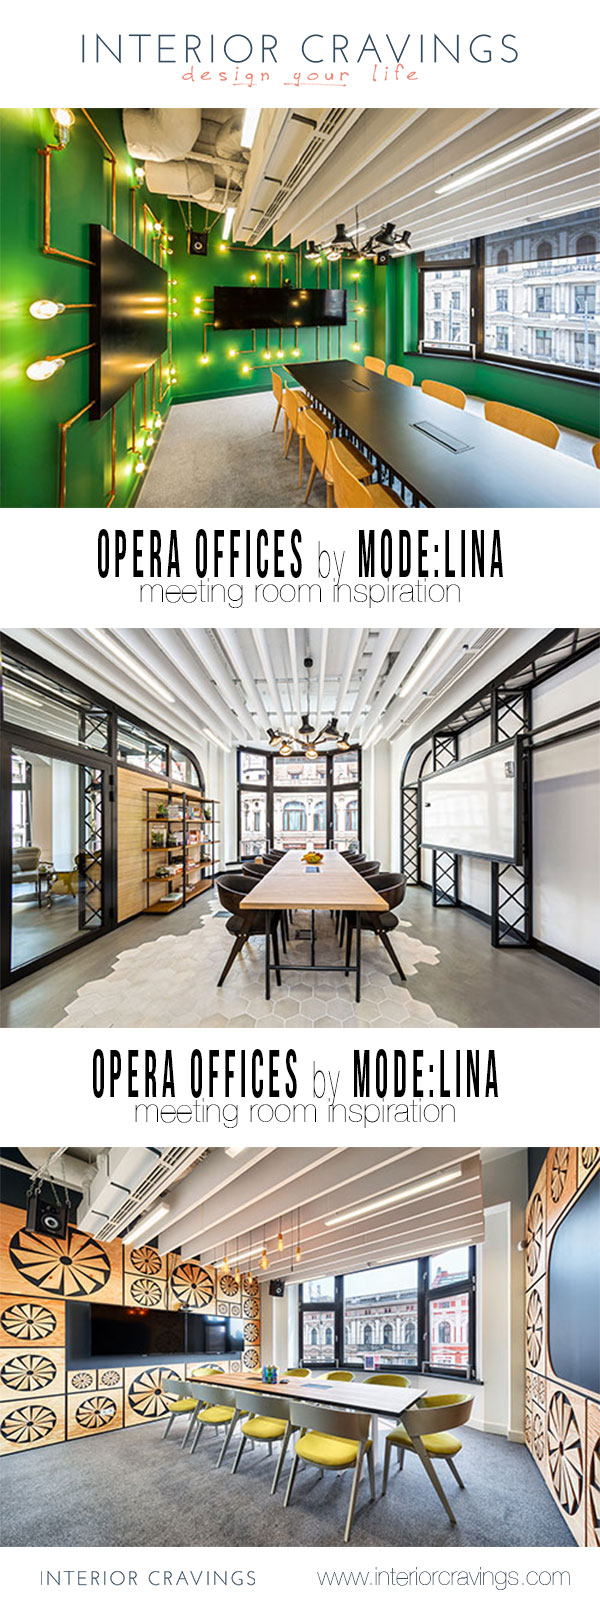 opera offices by modelina meeting room inspiration